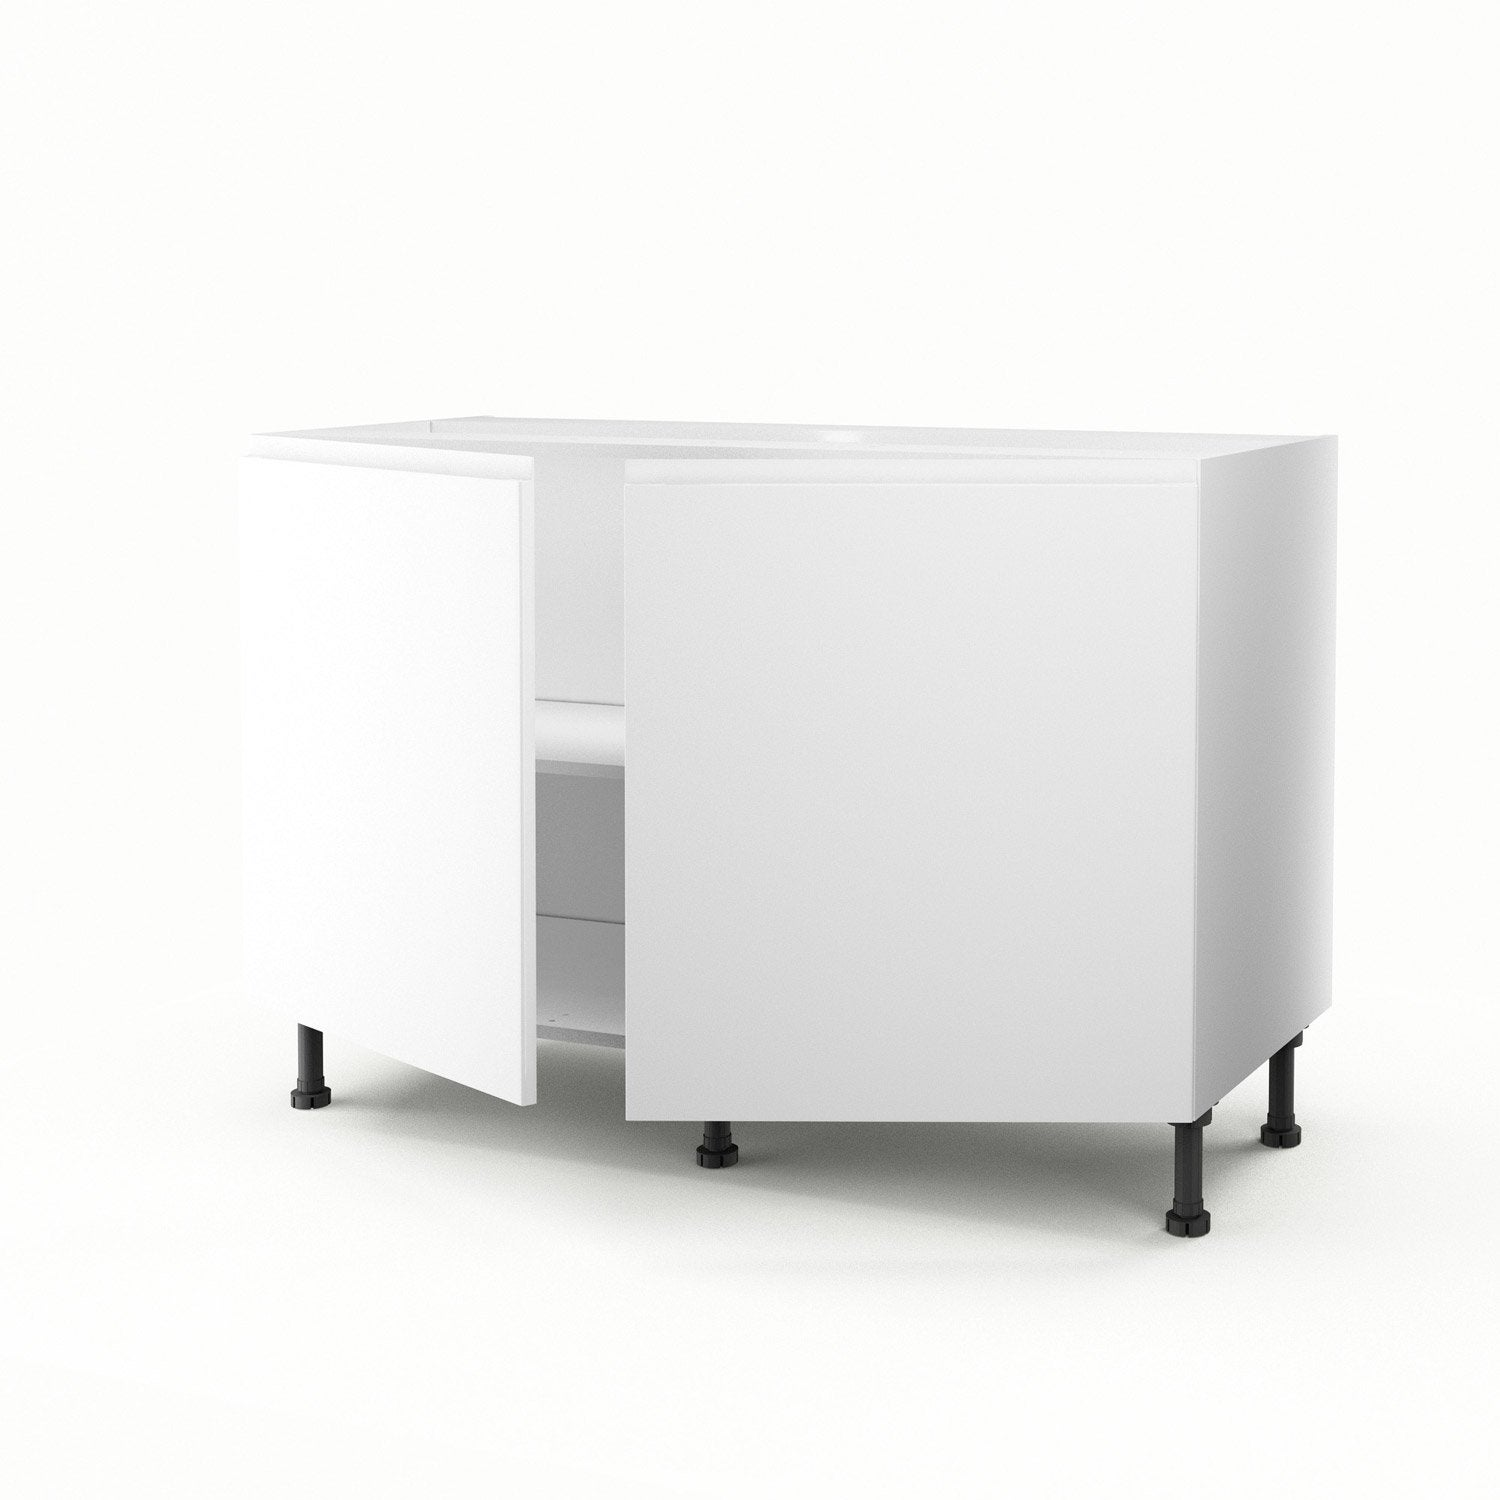 meuble de cuisine sous vier blanc 2 portes graphic x x cm leroy merlin. Black Bedroom Furniture Sets. Home Design Ideas